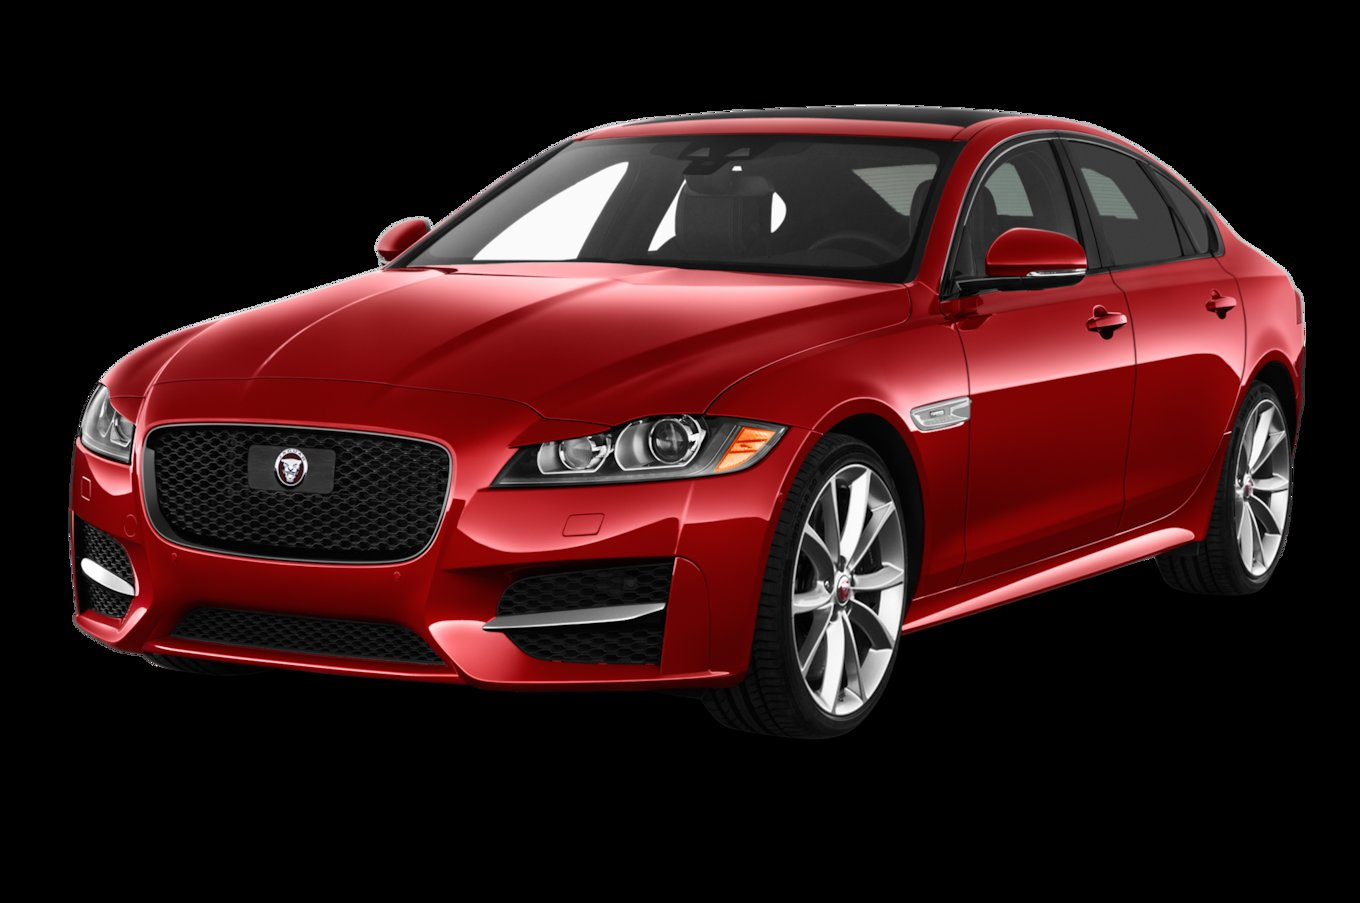 New Jaguar Xf Reviews Research New Used Models Motor Trend On This Month